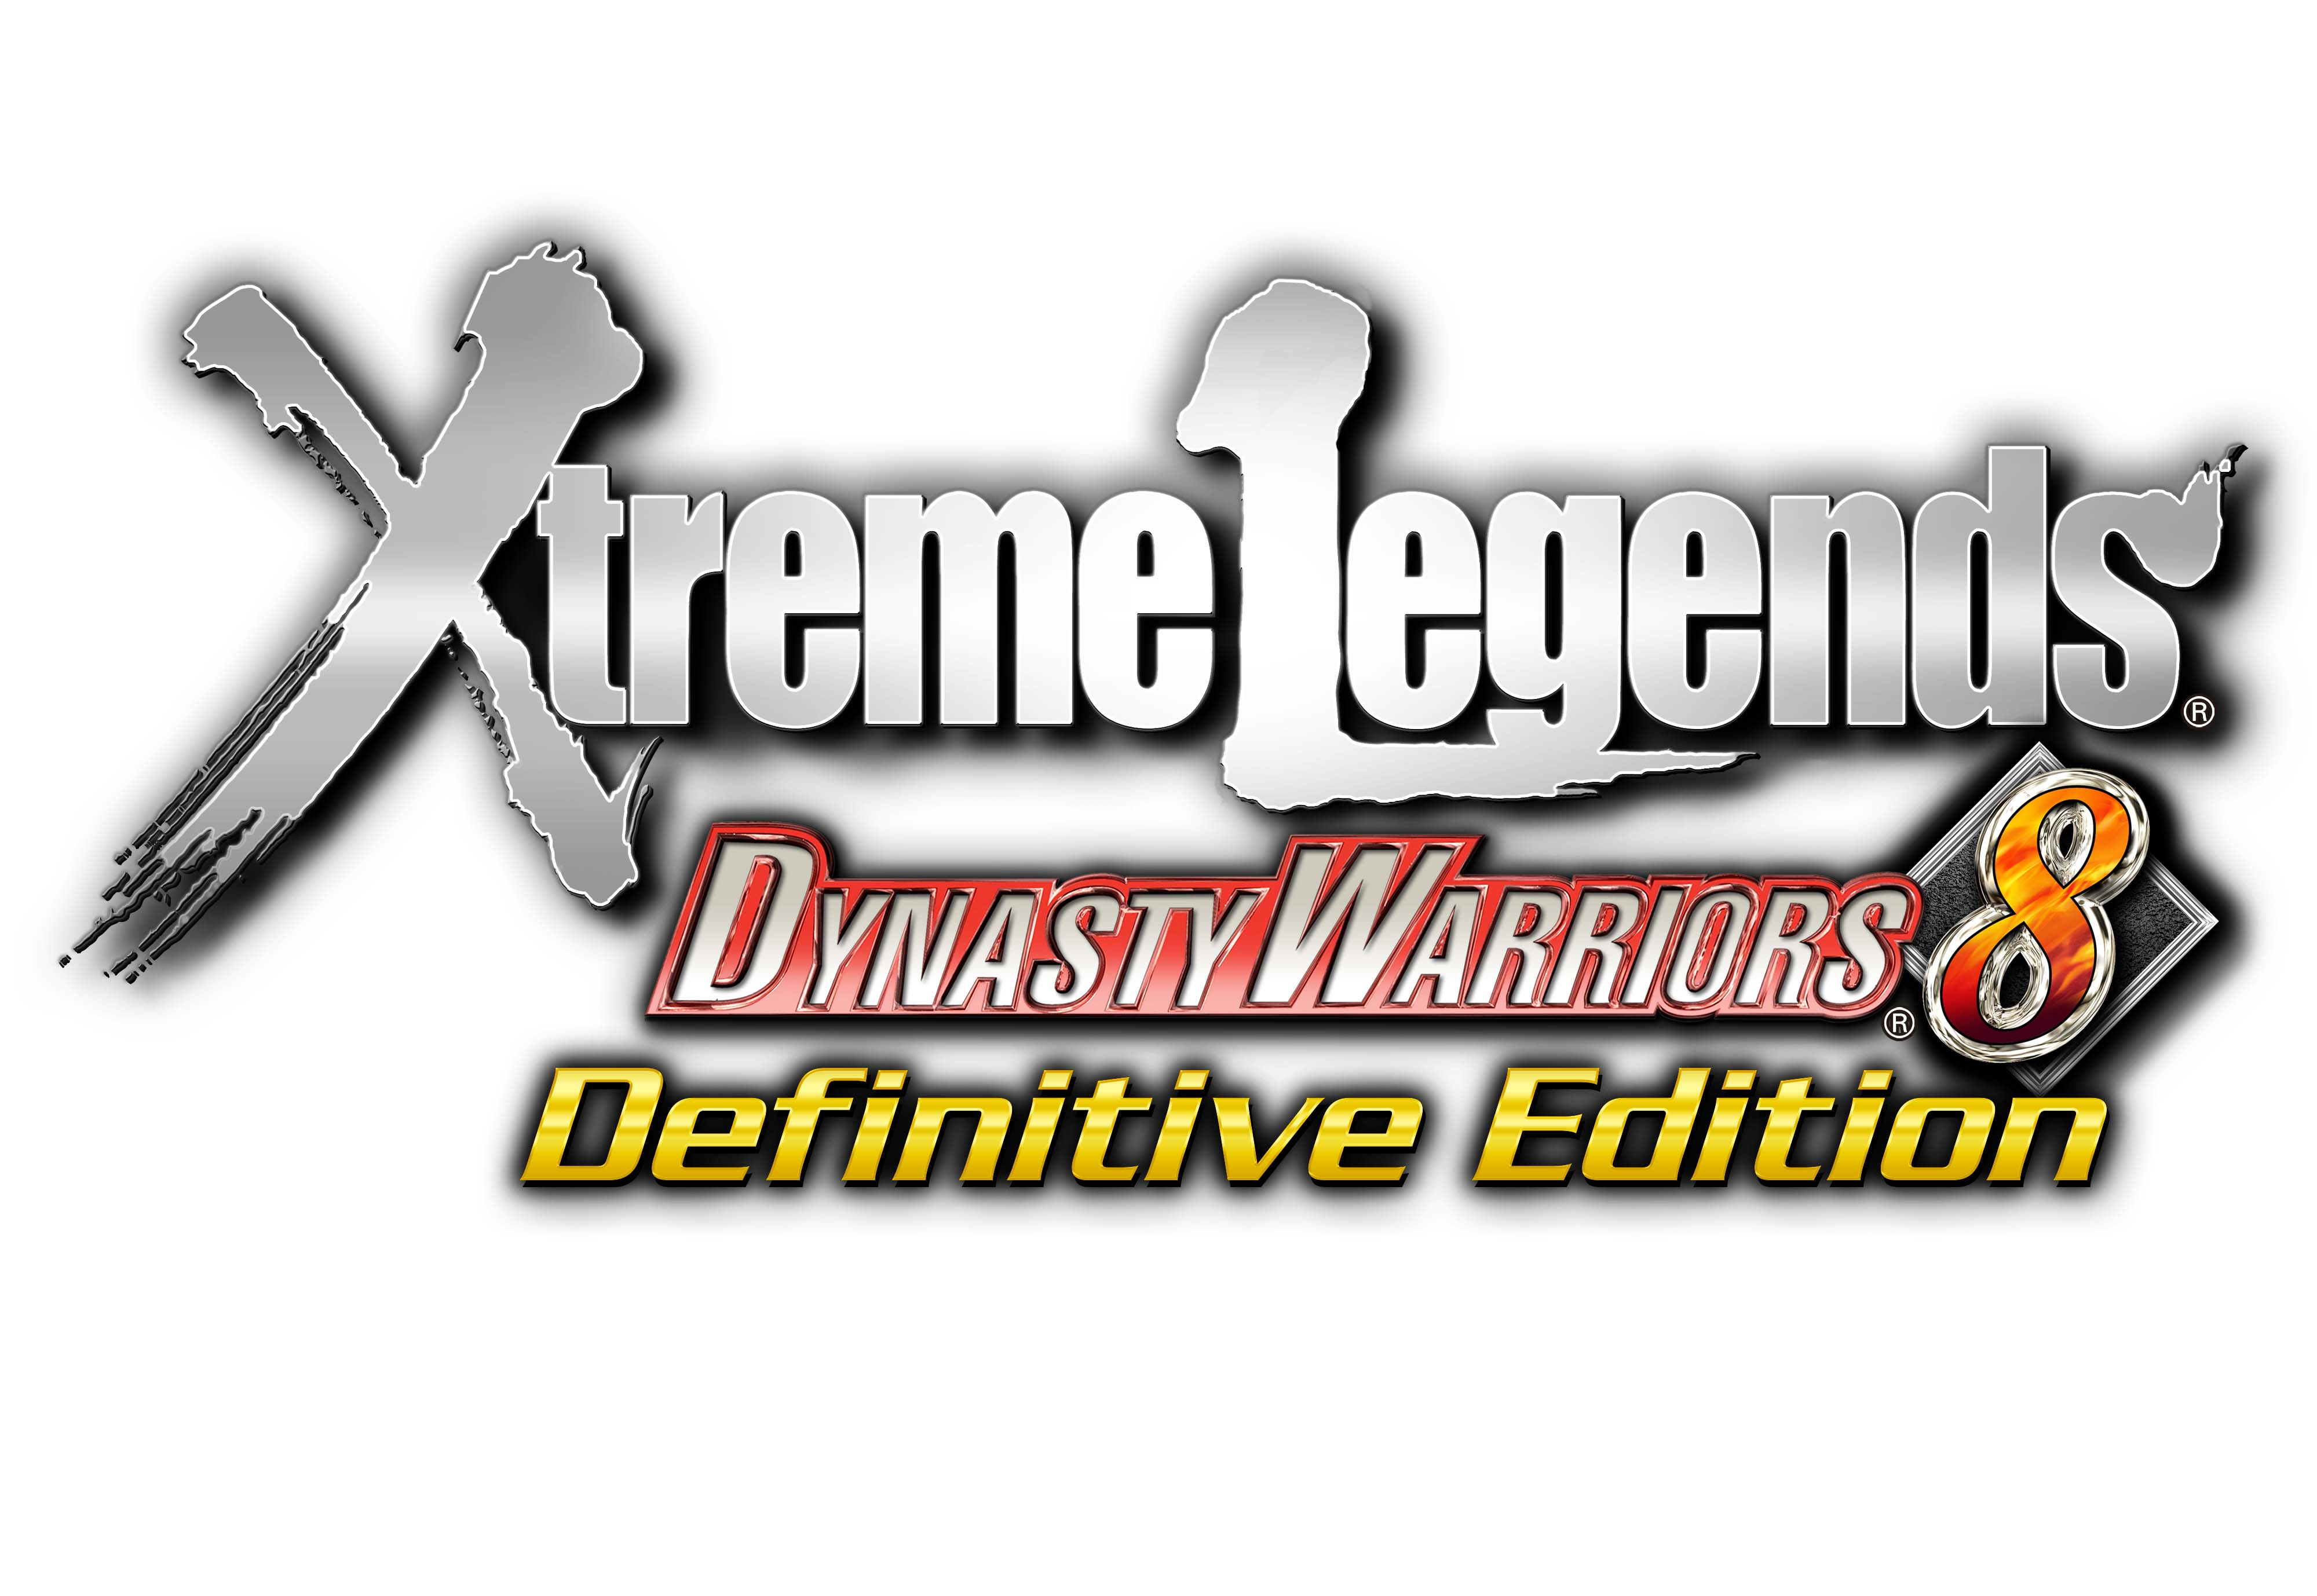 Xtreme Legends